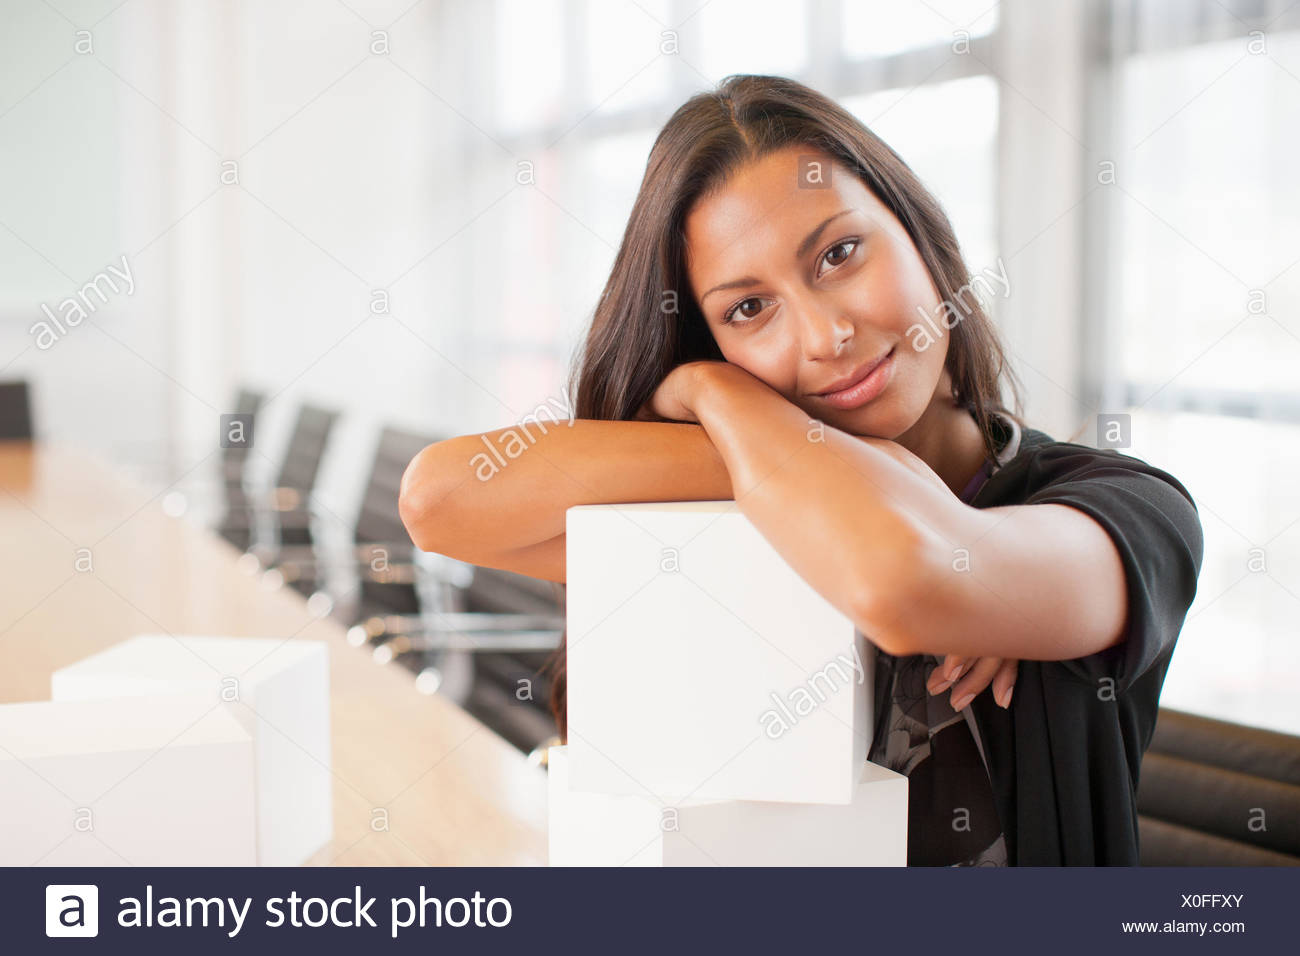 Businesswoman sitting in conference room with white cubes - Stock Image